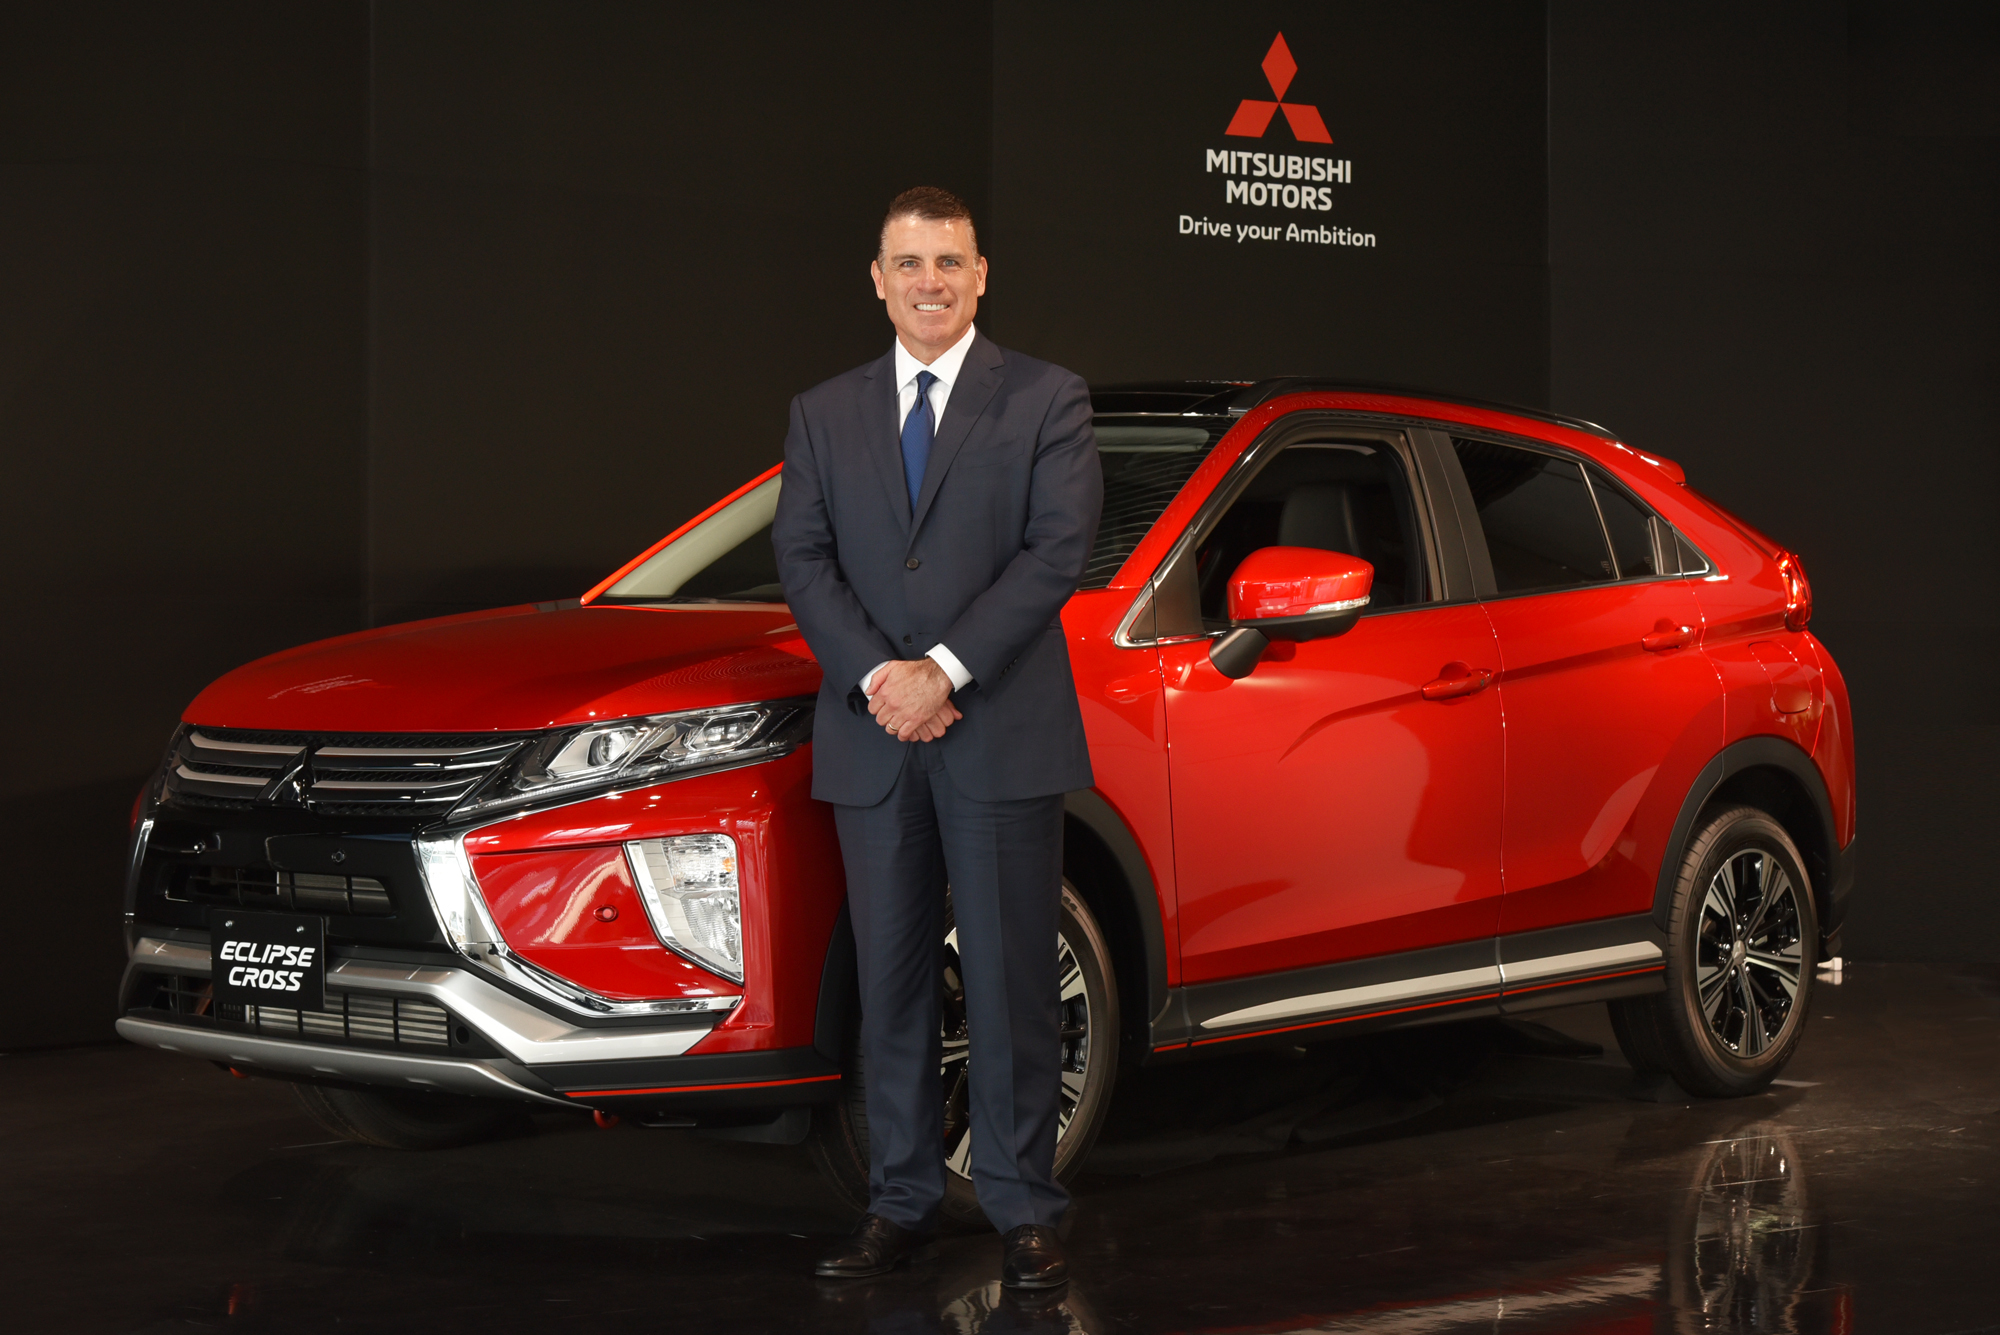 mitsubishi motors case study This case was prepared by david  mitsubishi ufj morgan stanley securities estimated utilization at other  motors dominated the automobile industry.